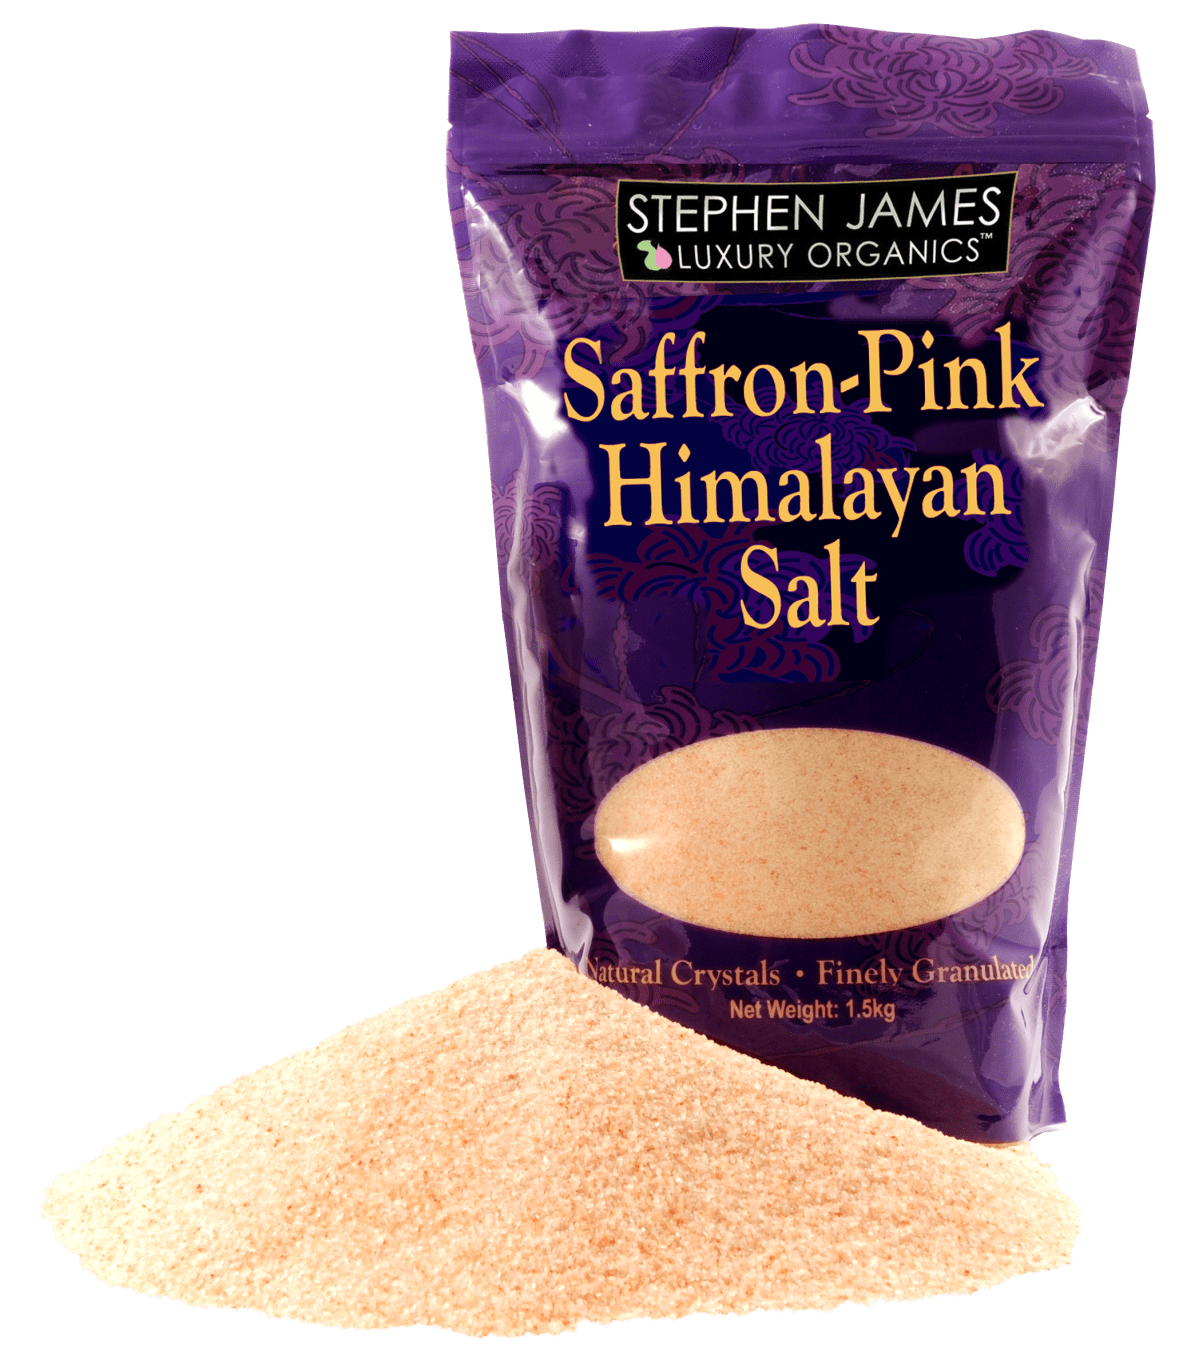 SJO Salt Bag Packaging